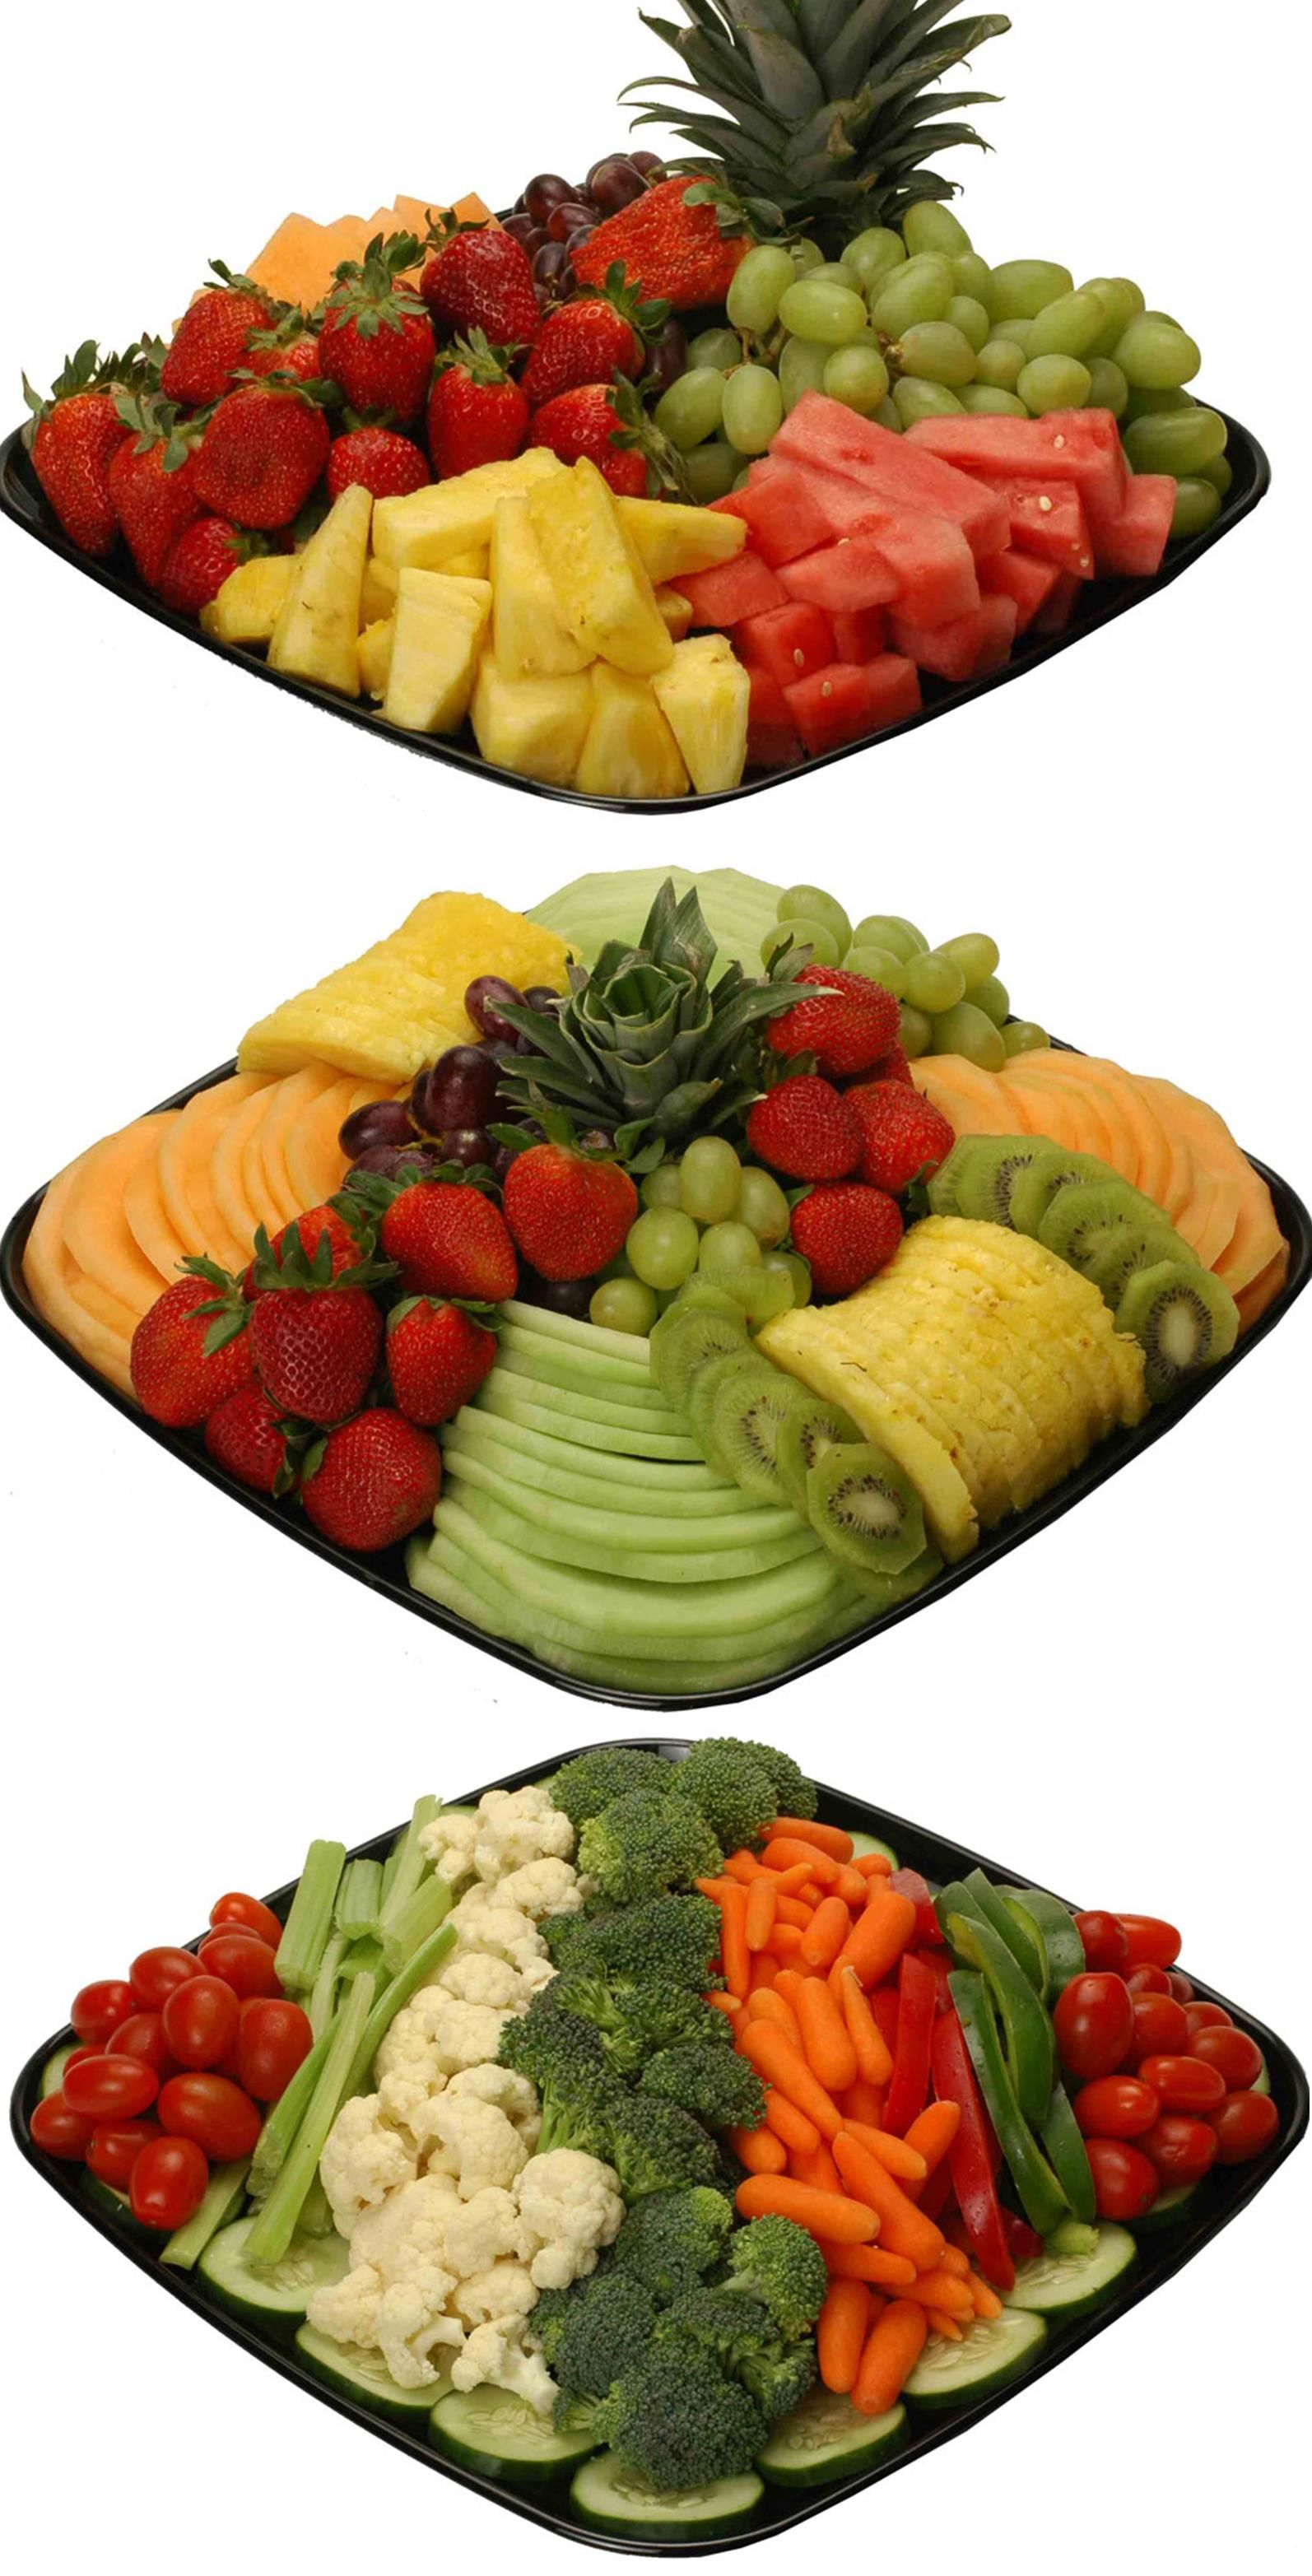 Deli fruit and veggie tray ideas Middle picture slice fruit